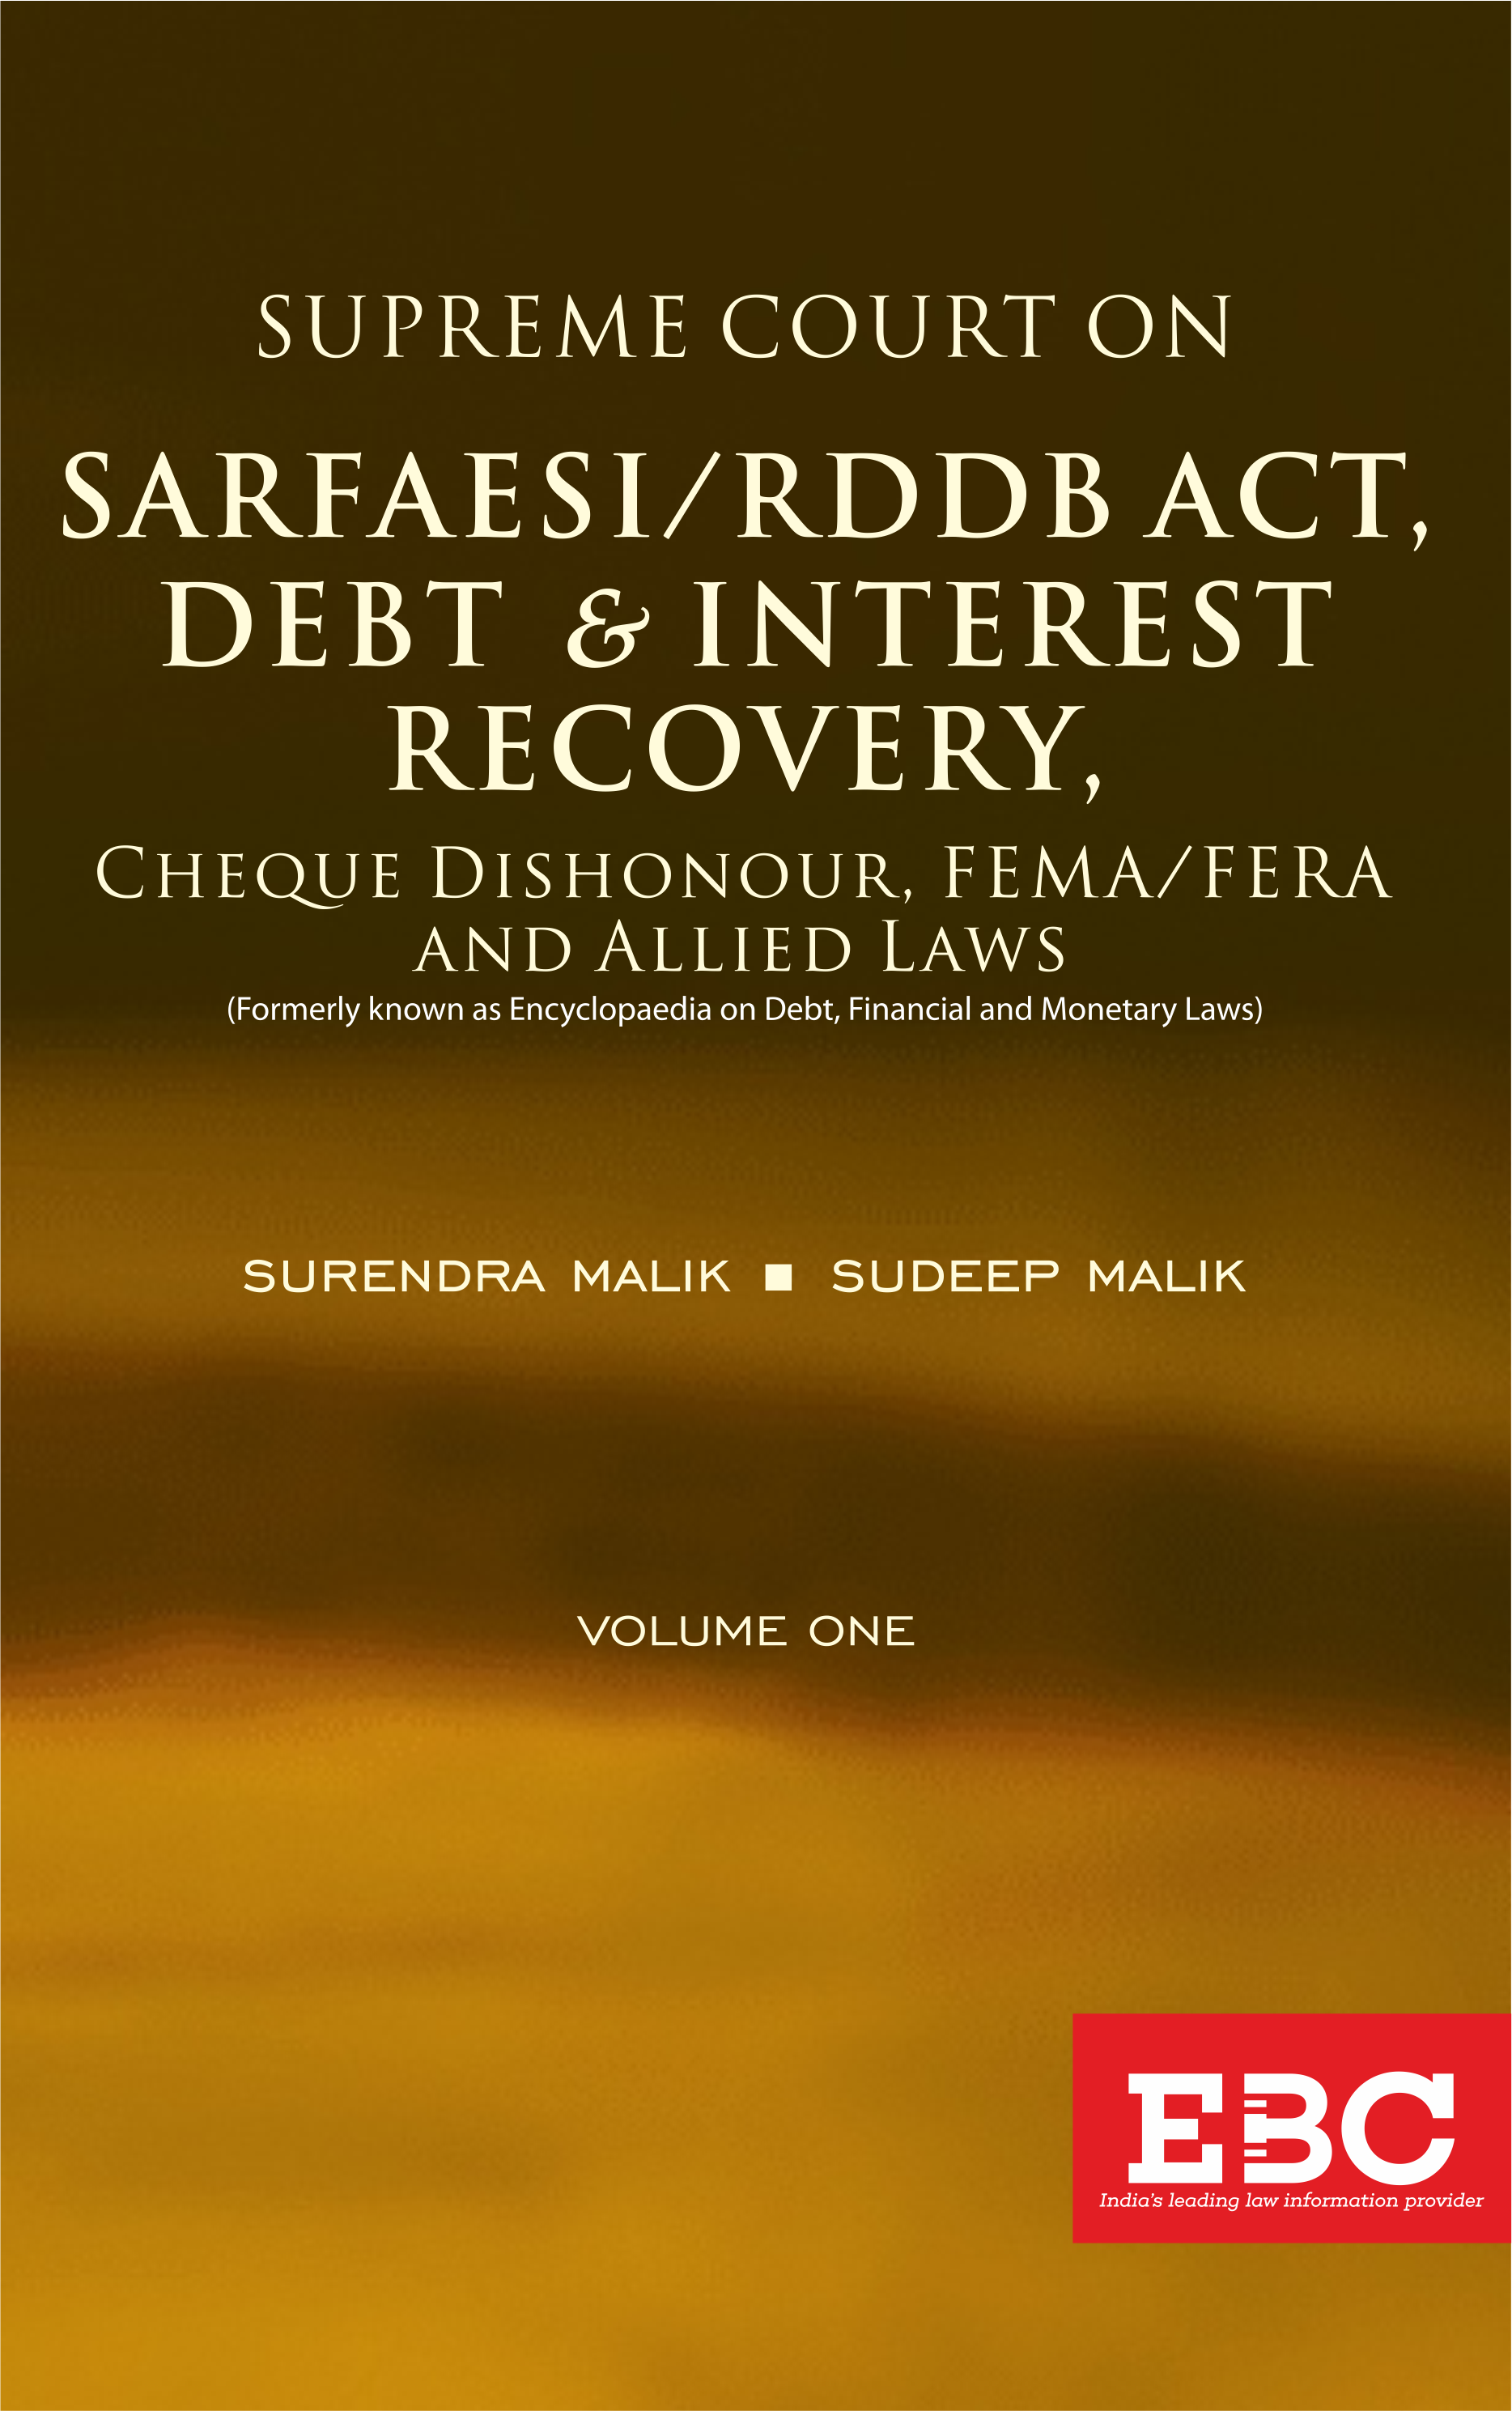 Supreme Court On SARFAESI/RDDB Act, Debt & Interest Recovery,Cheque Dishonour, FEMA/FERA and Allied Laws - In 4 Volumes